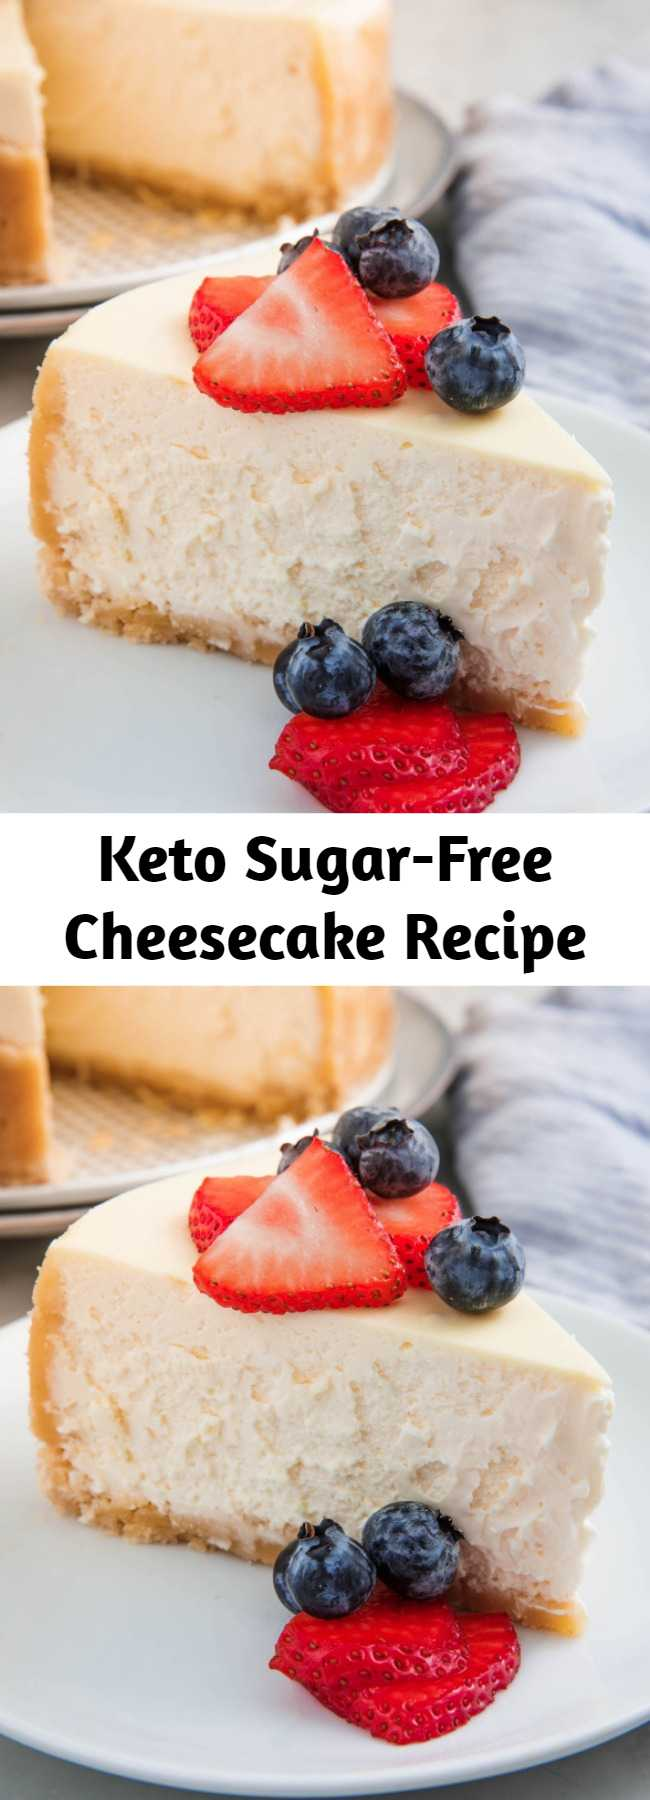 Keto Sugar-Free Cheesecake Recipe - Even if you aren't on a keto diet, you'll be amazed with this Keto Sugar-Free Cheesecake.